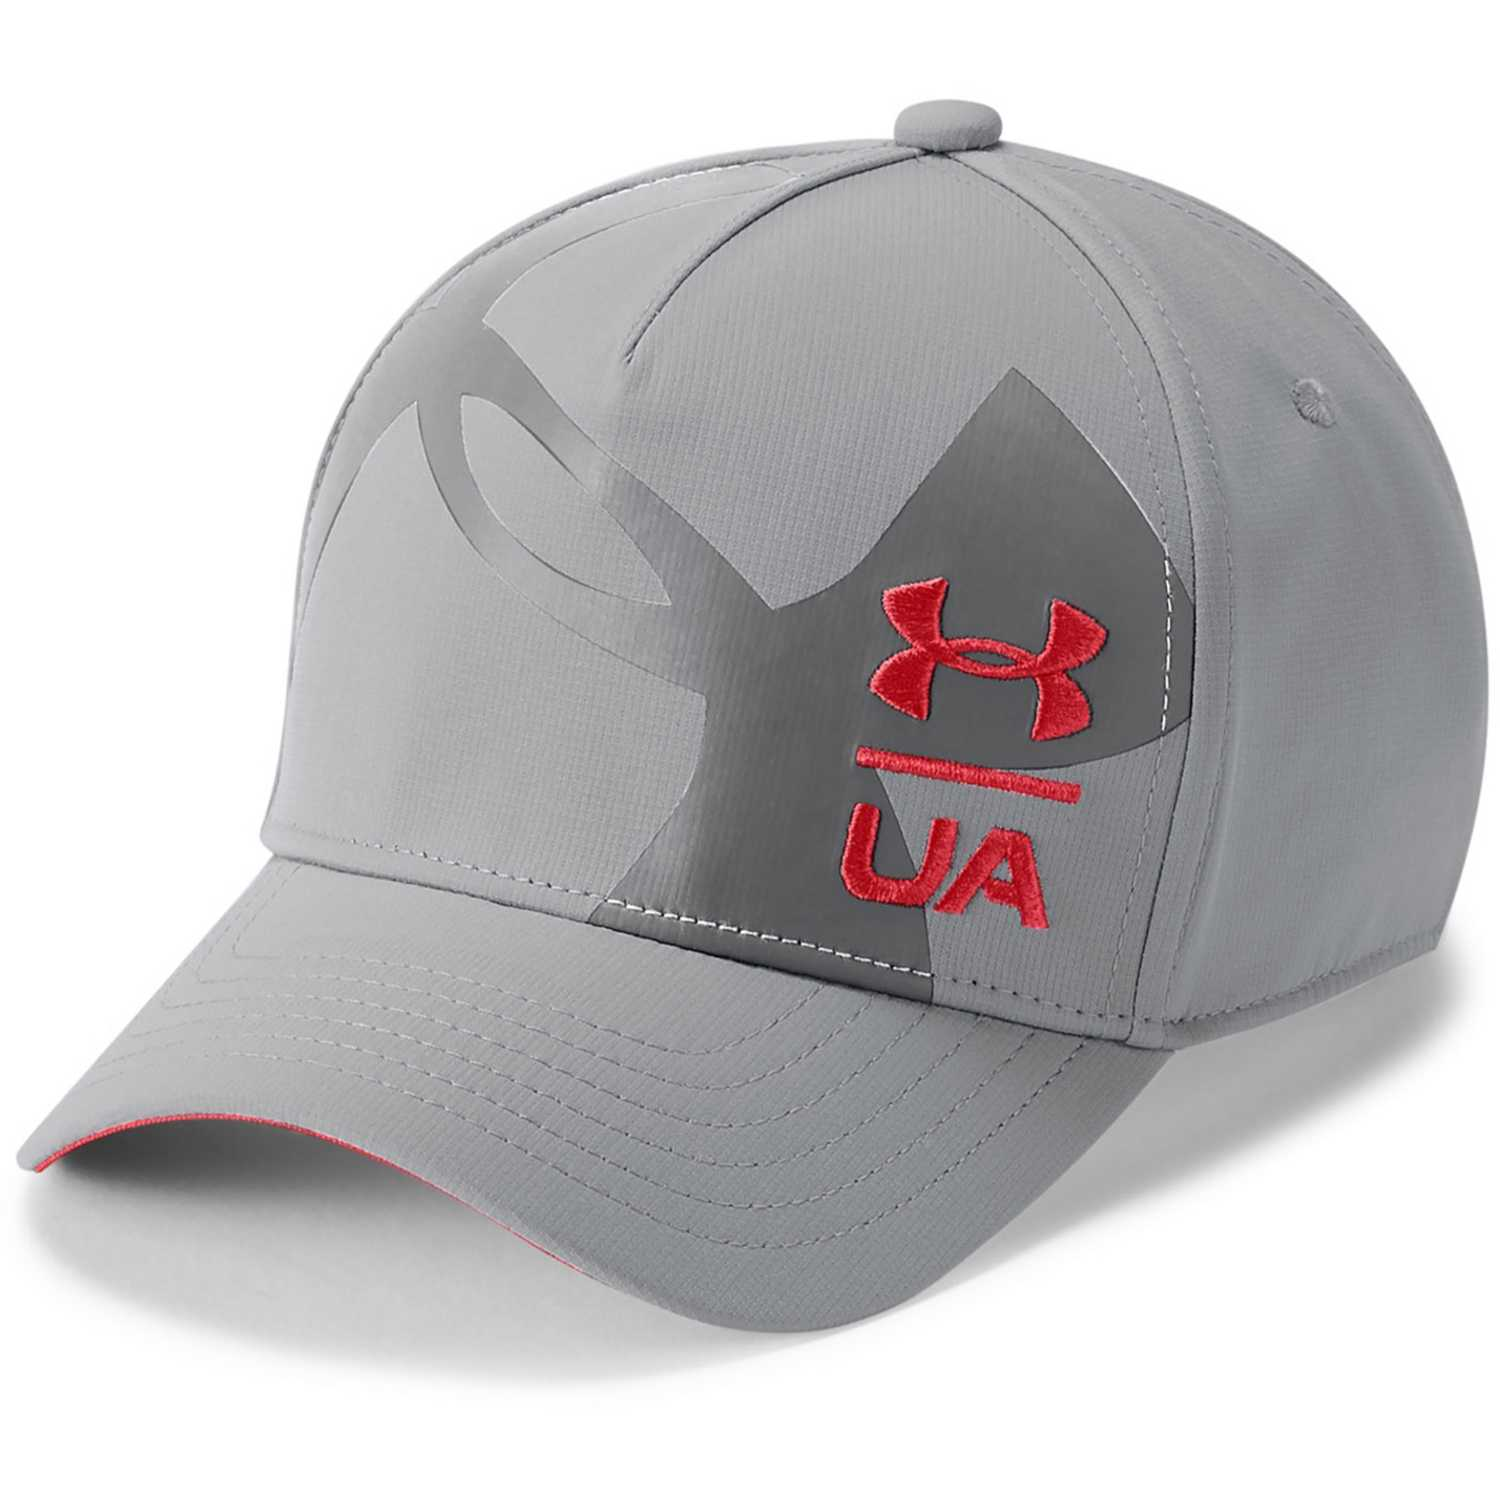 Gorro de Niño Under Armour Plomo boy's billboard cap 3.0-gry